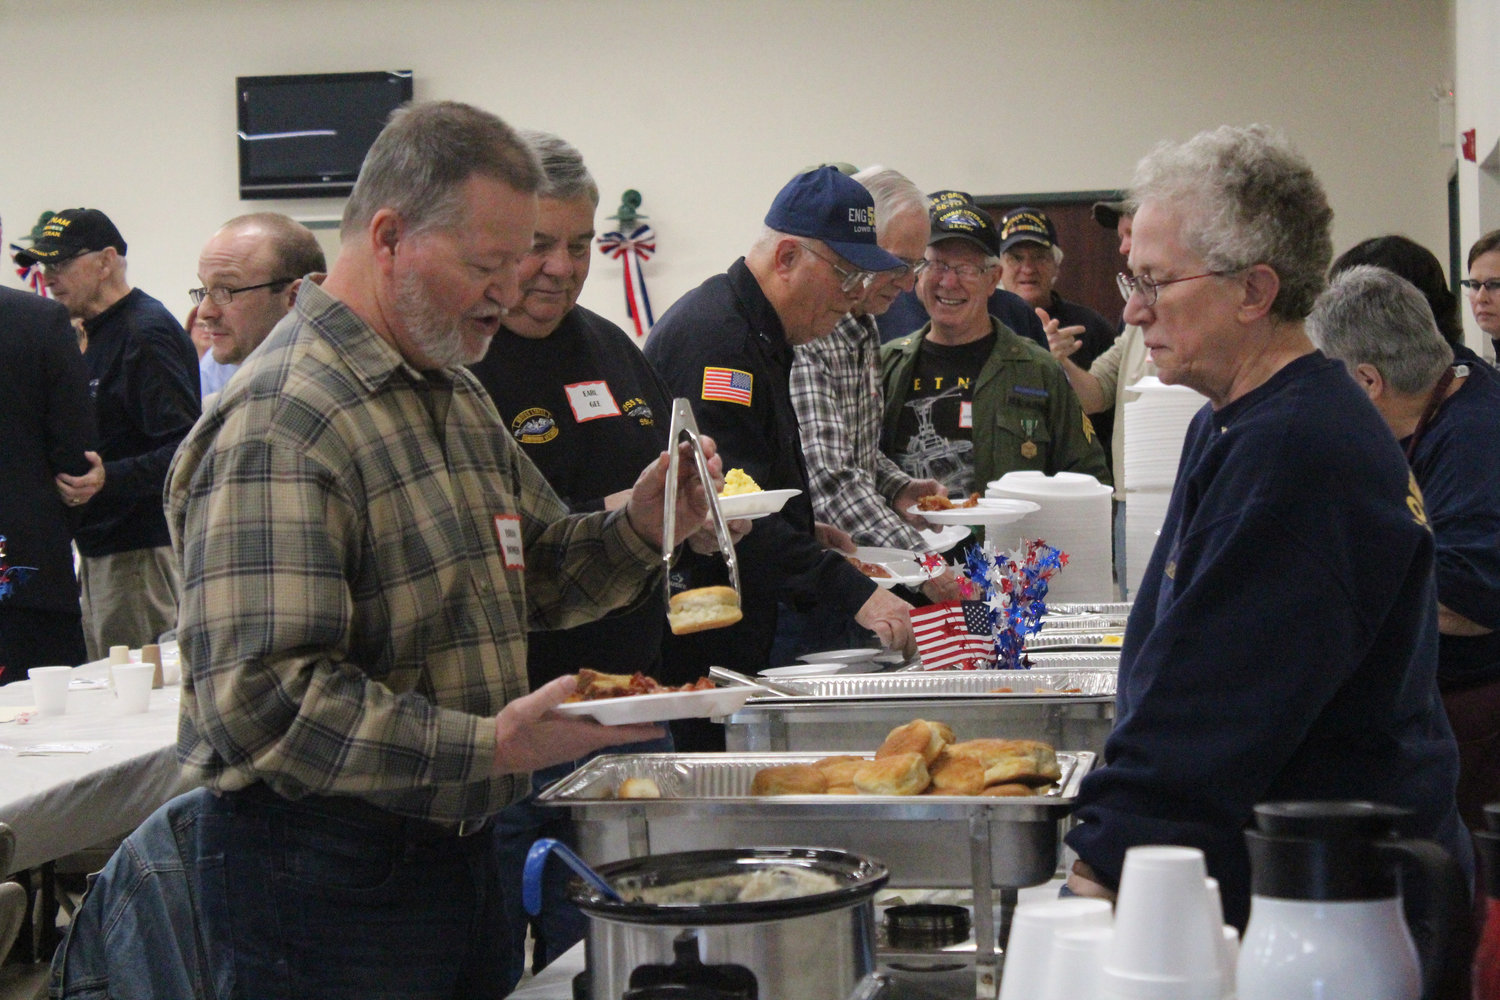 Navy veteran Brian Bowers fills his plate during Rep. Tom Mehaffie's Veterans Breakfast at the Lower Swatara Fire Hall Nov. 8.